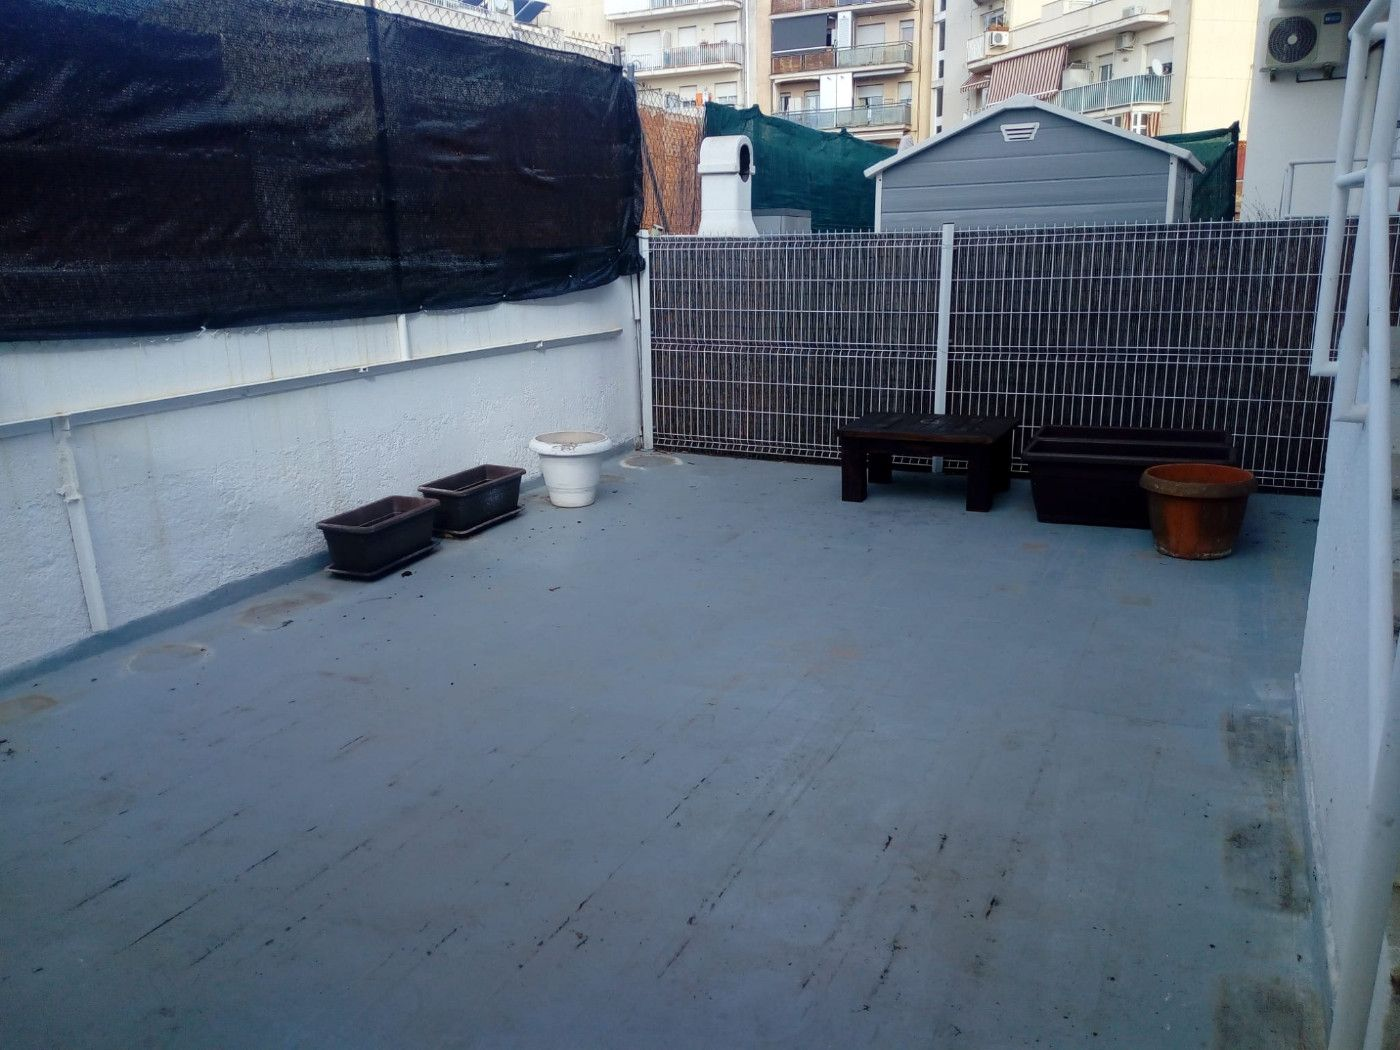 Location Appartement  Carrer almeria. Amplio piso de 4 habitaciones!